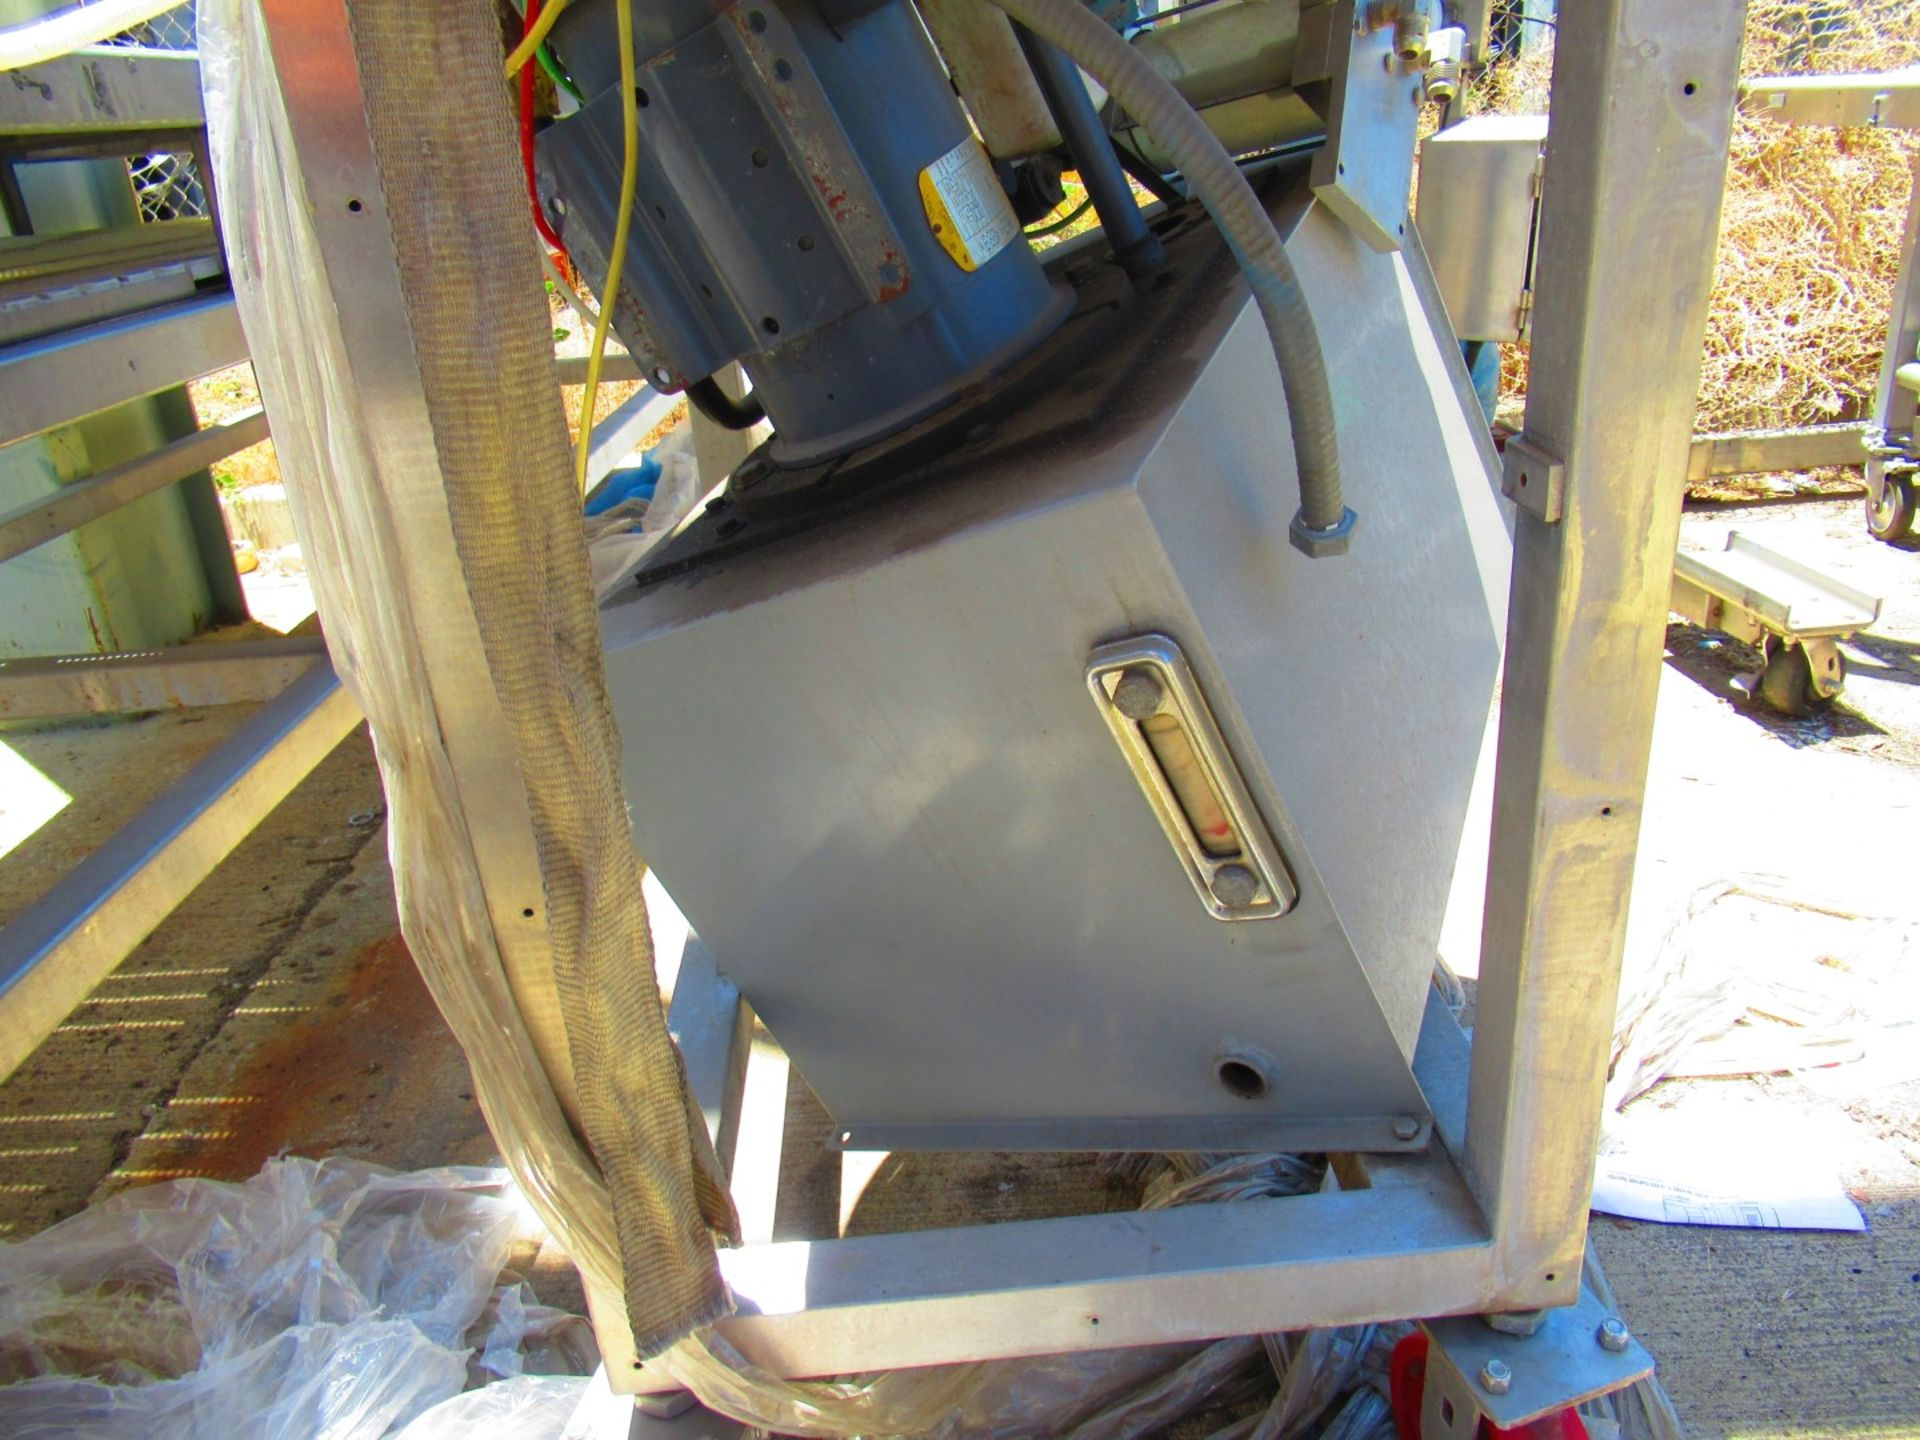 Hydraulic Can Crusher - Image 2 of 6